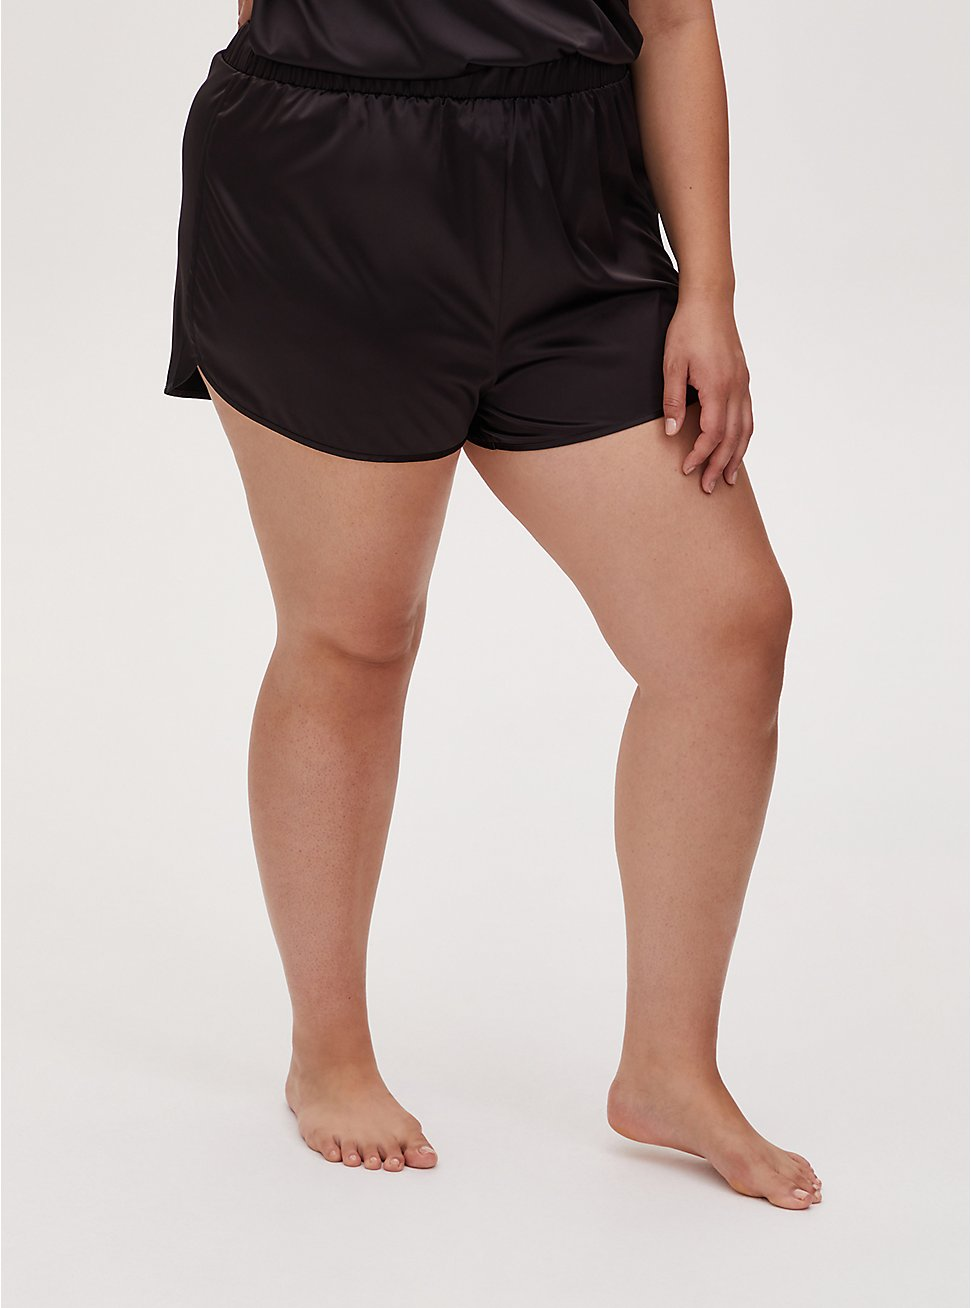 Black Dolphin Hem Satin Sleep Short, DEEP BLACK, hi-res